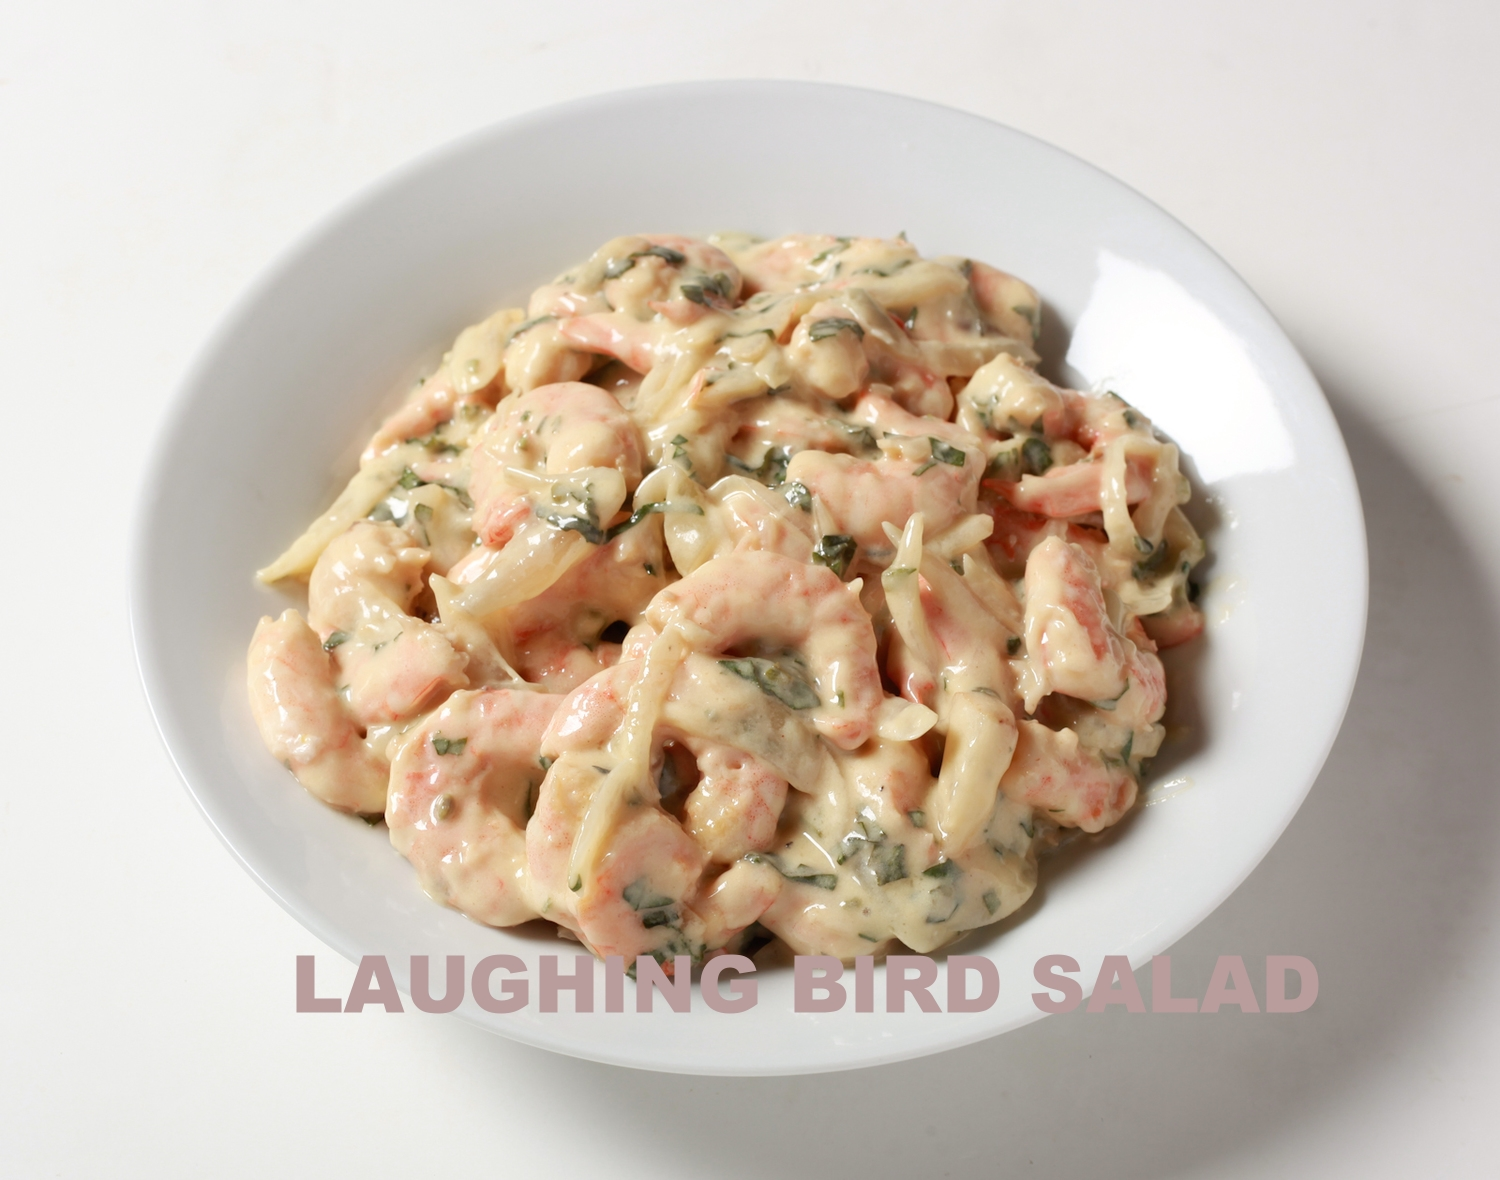 SanFranciscoFishCo,LaughingBirdSalad,1-2lb (3 of 3).jpg